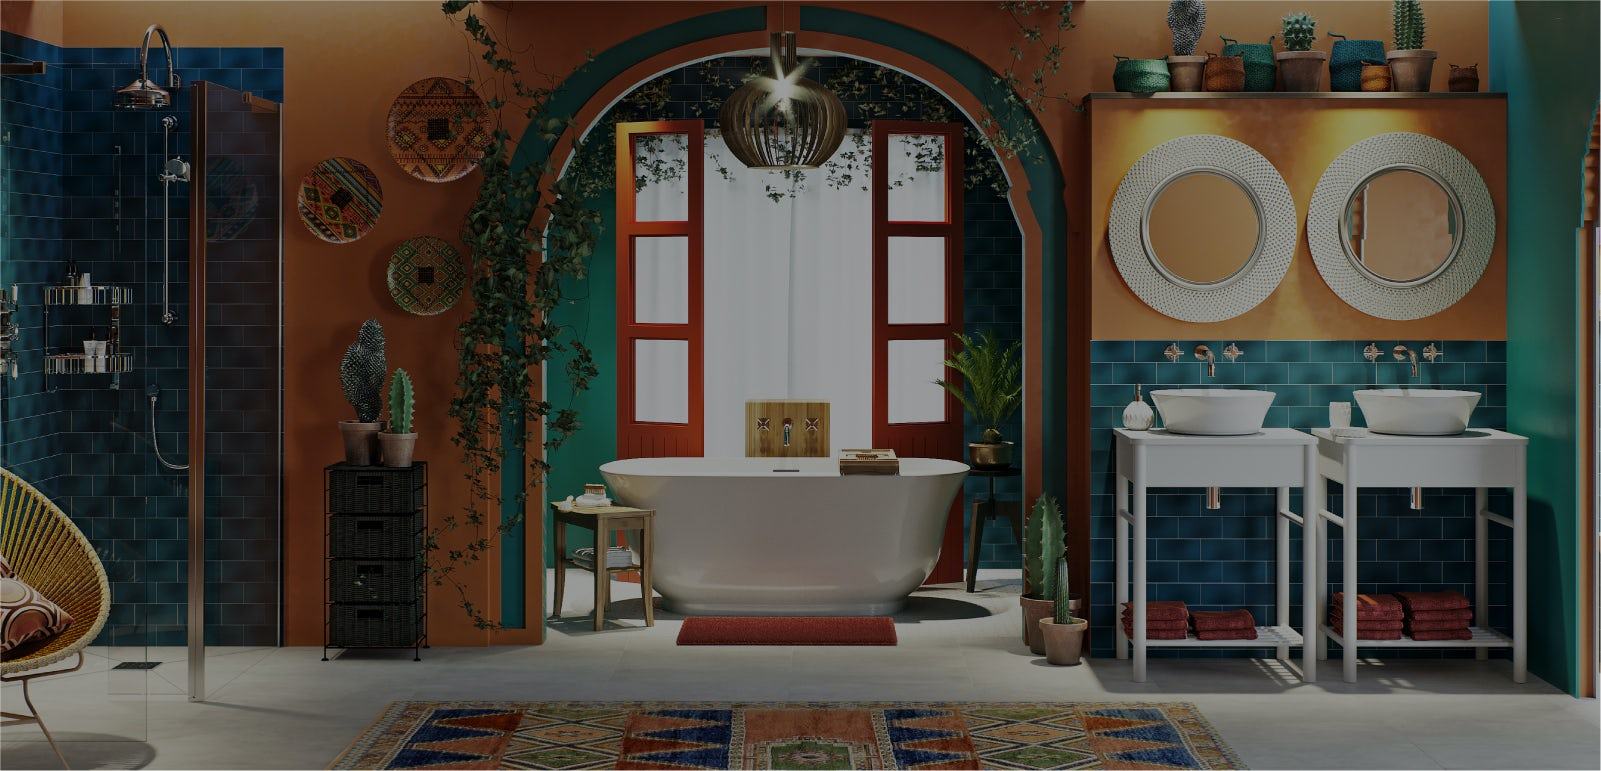 Bathroom Ideas: Go Global—Mexico